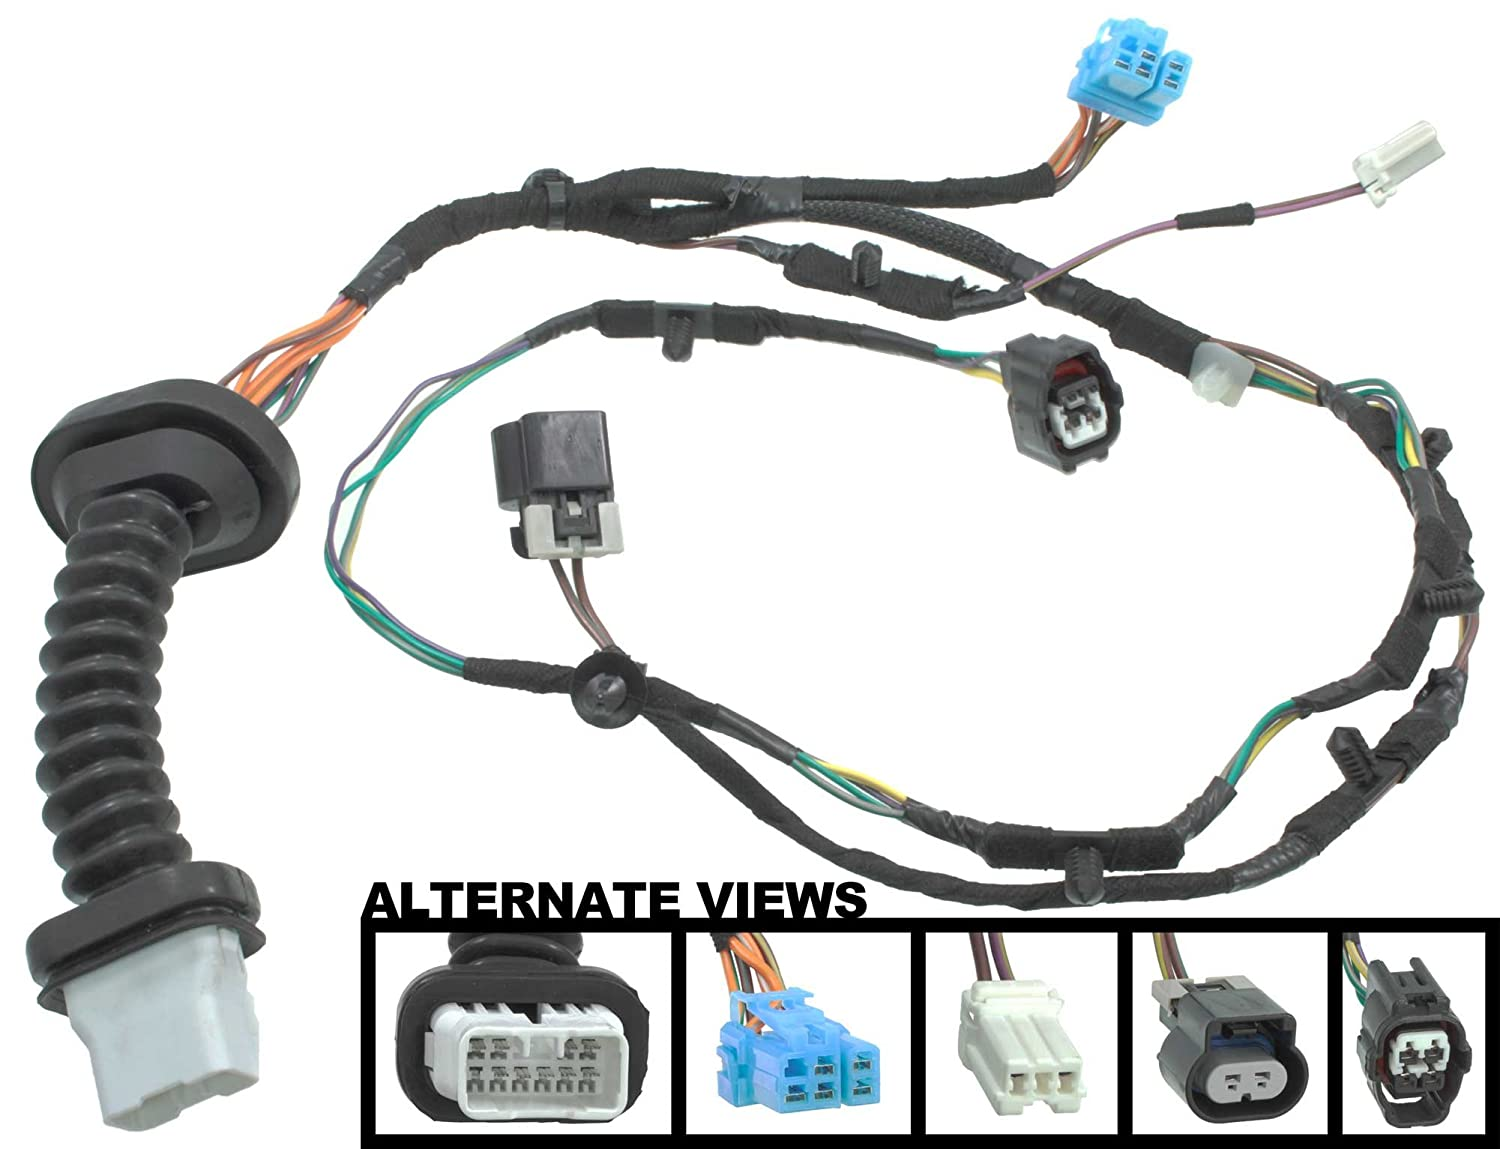 71fJrC9anCL._SL1500_ amazon com apdty 756617 power door lock wiring pigtail connector door wiring harness at crackthecode.co